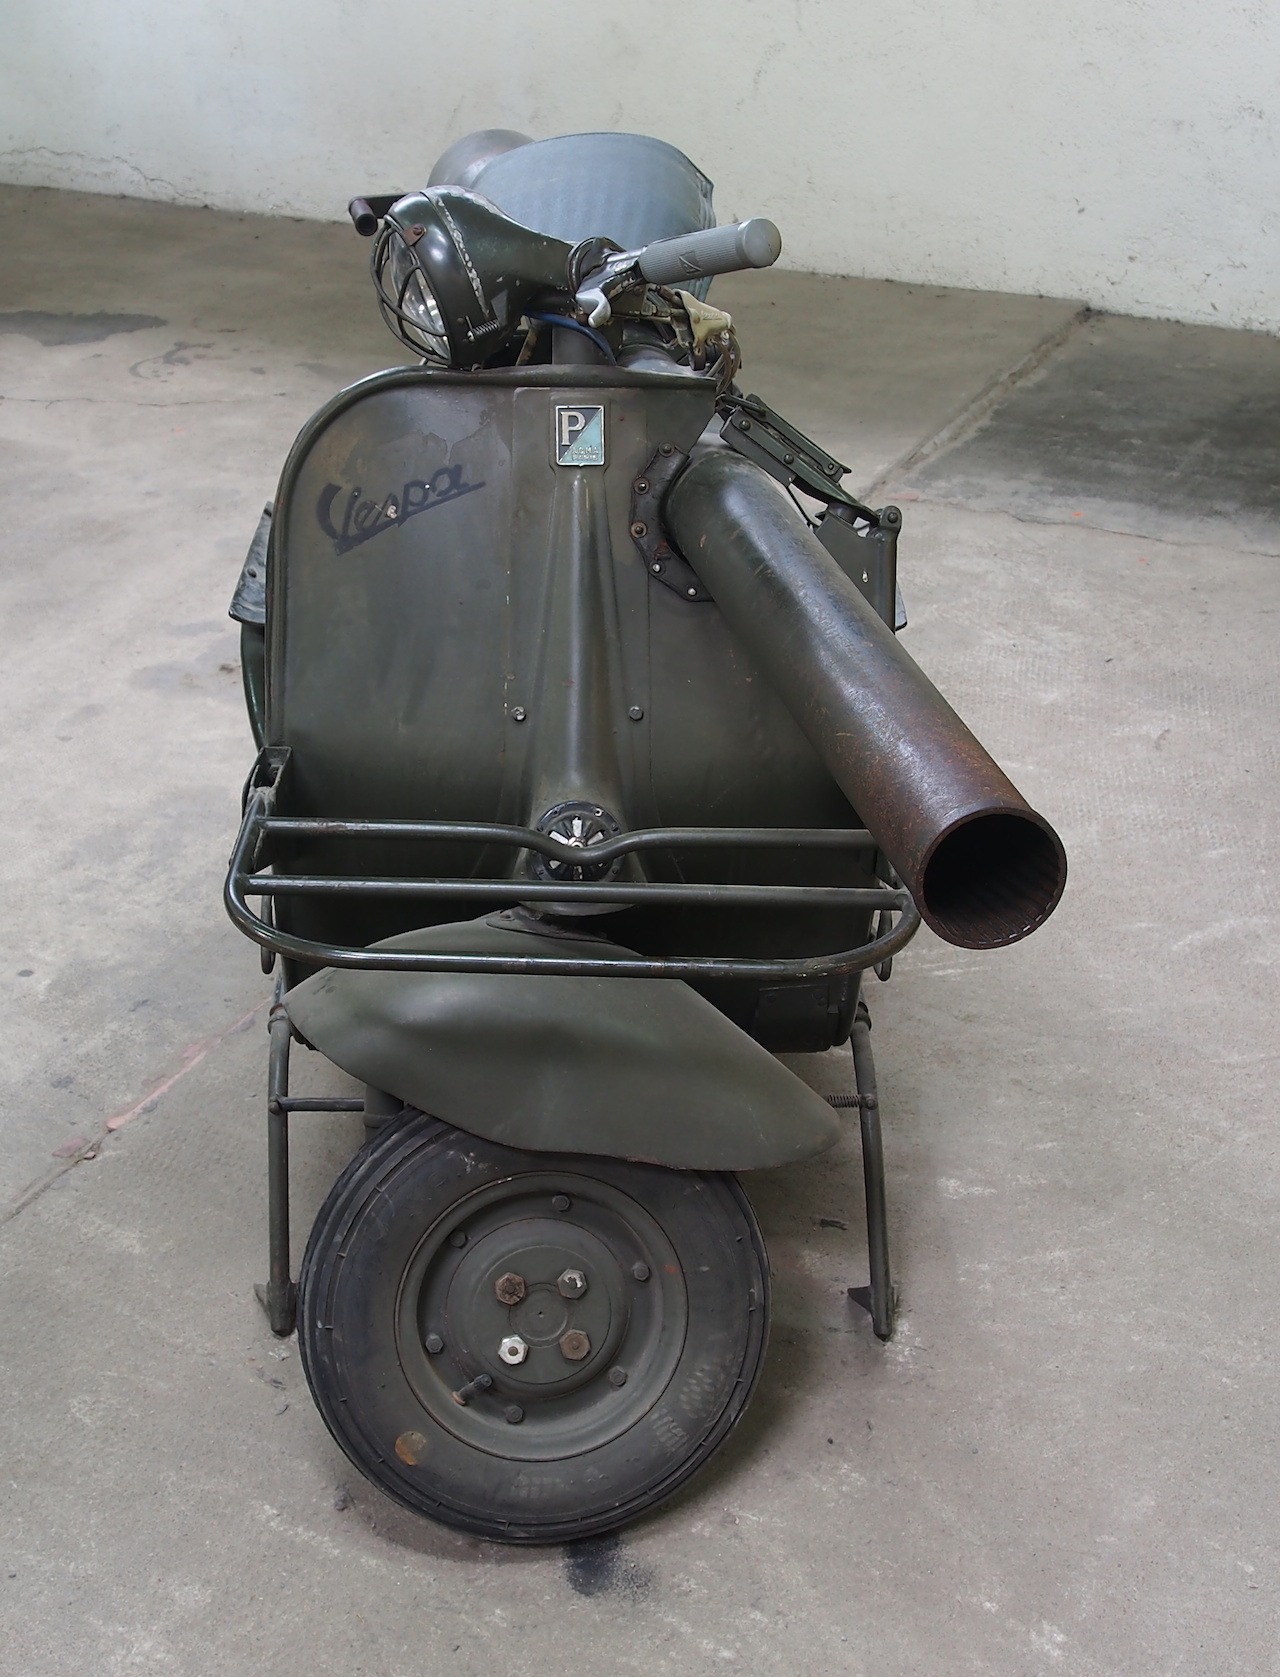 ACMA_TAP,_SPG_Vespa_in_the_Musée_des_Blindés,_France,_pic-1